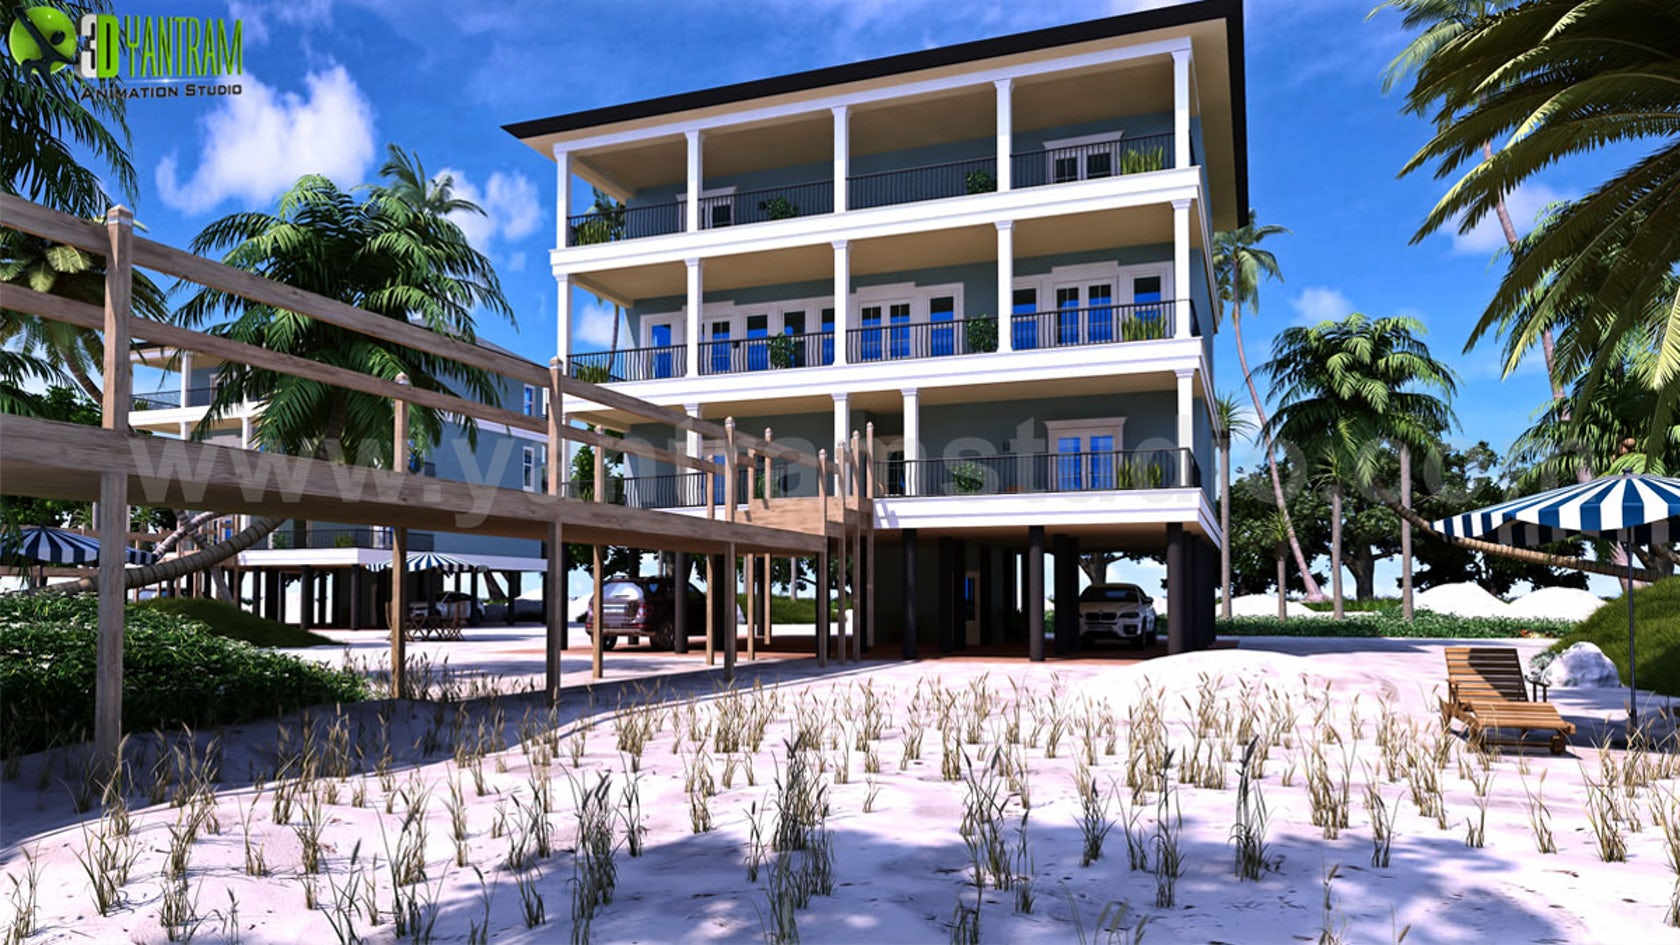 Modern 3d exterior beach house rendering perspective view for Architectural exterior design virginia beach